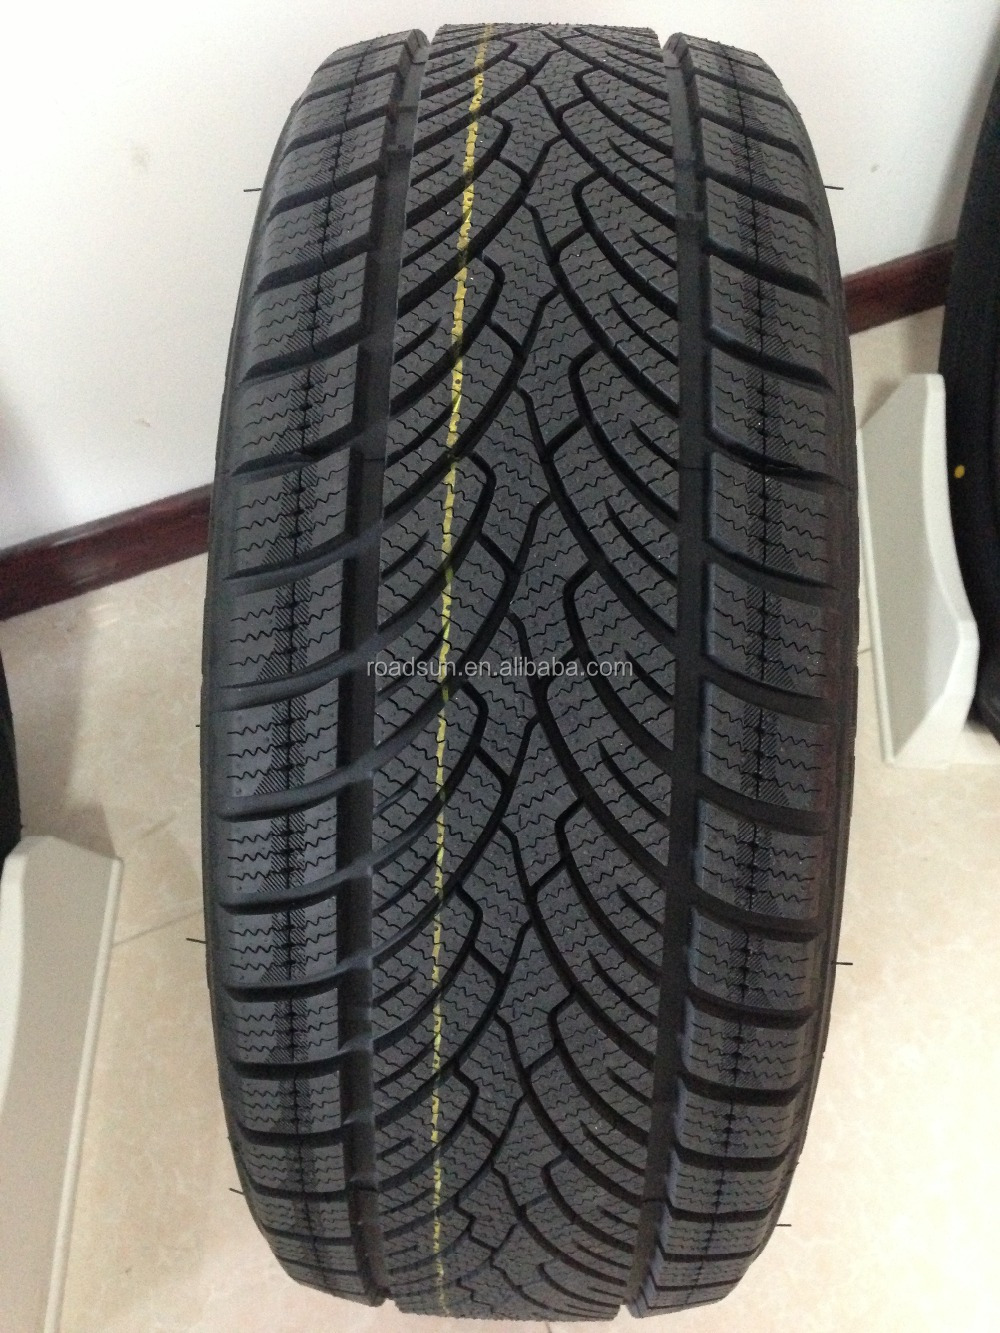 white wall tire 20555r16 passenger car tire from car tire